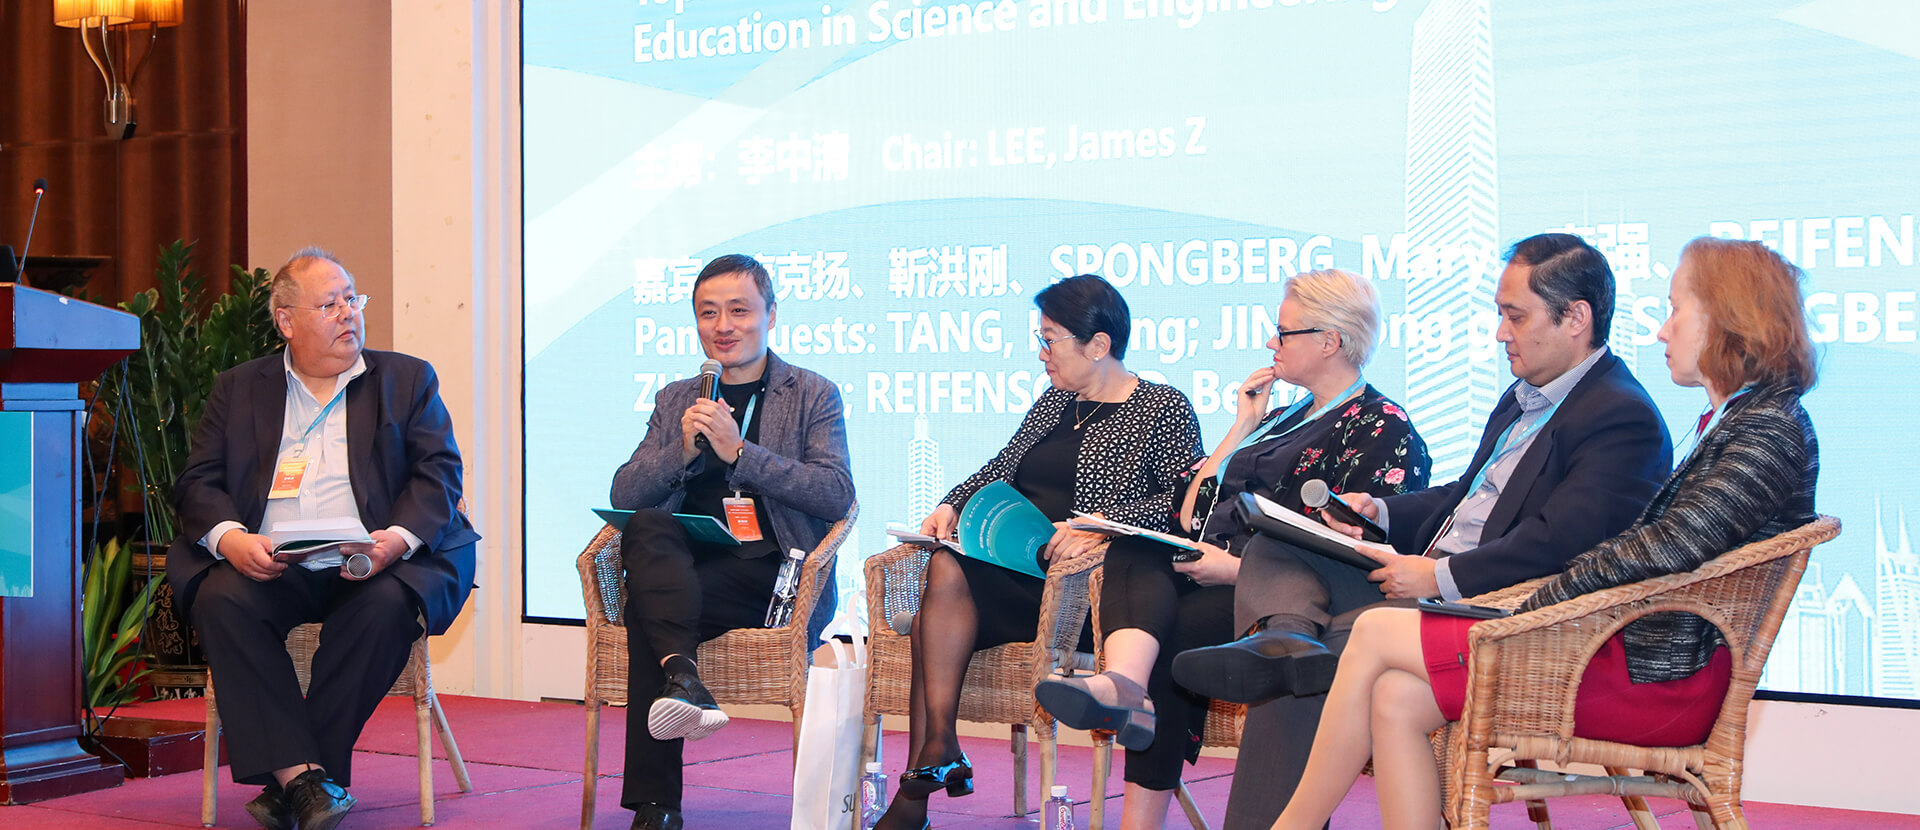 Humanities and Arts Education in World-class Science and Engineering Universities Forum Held